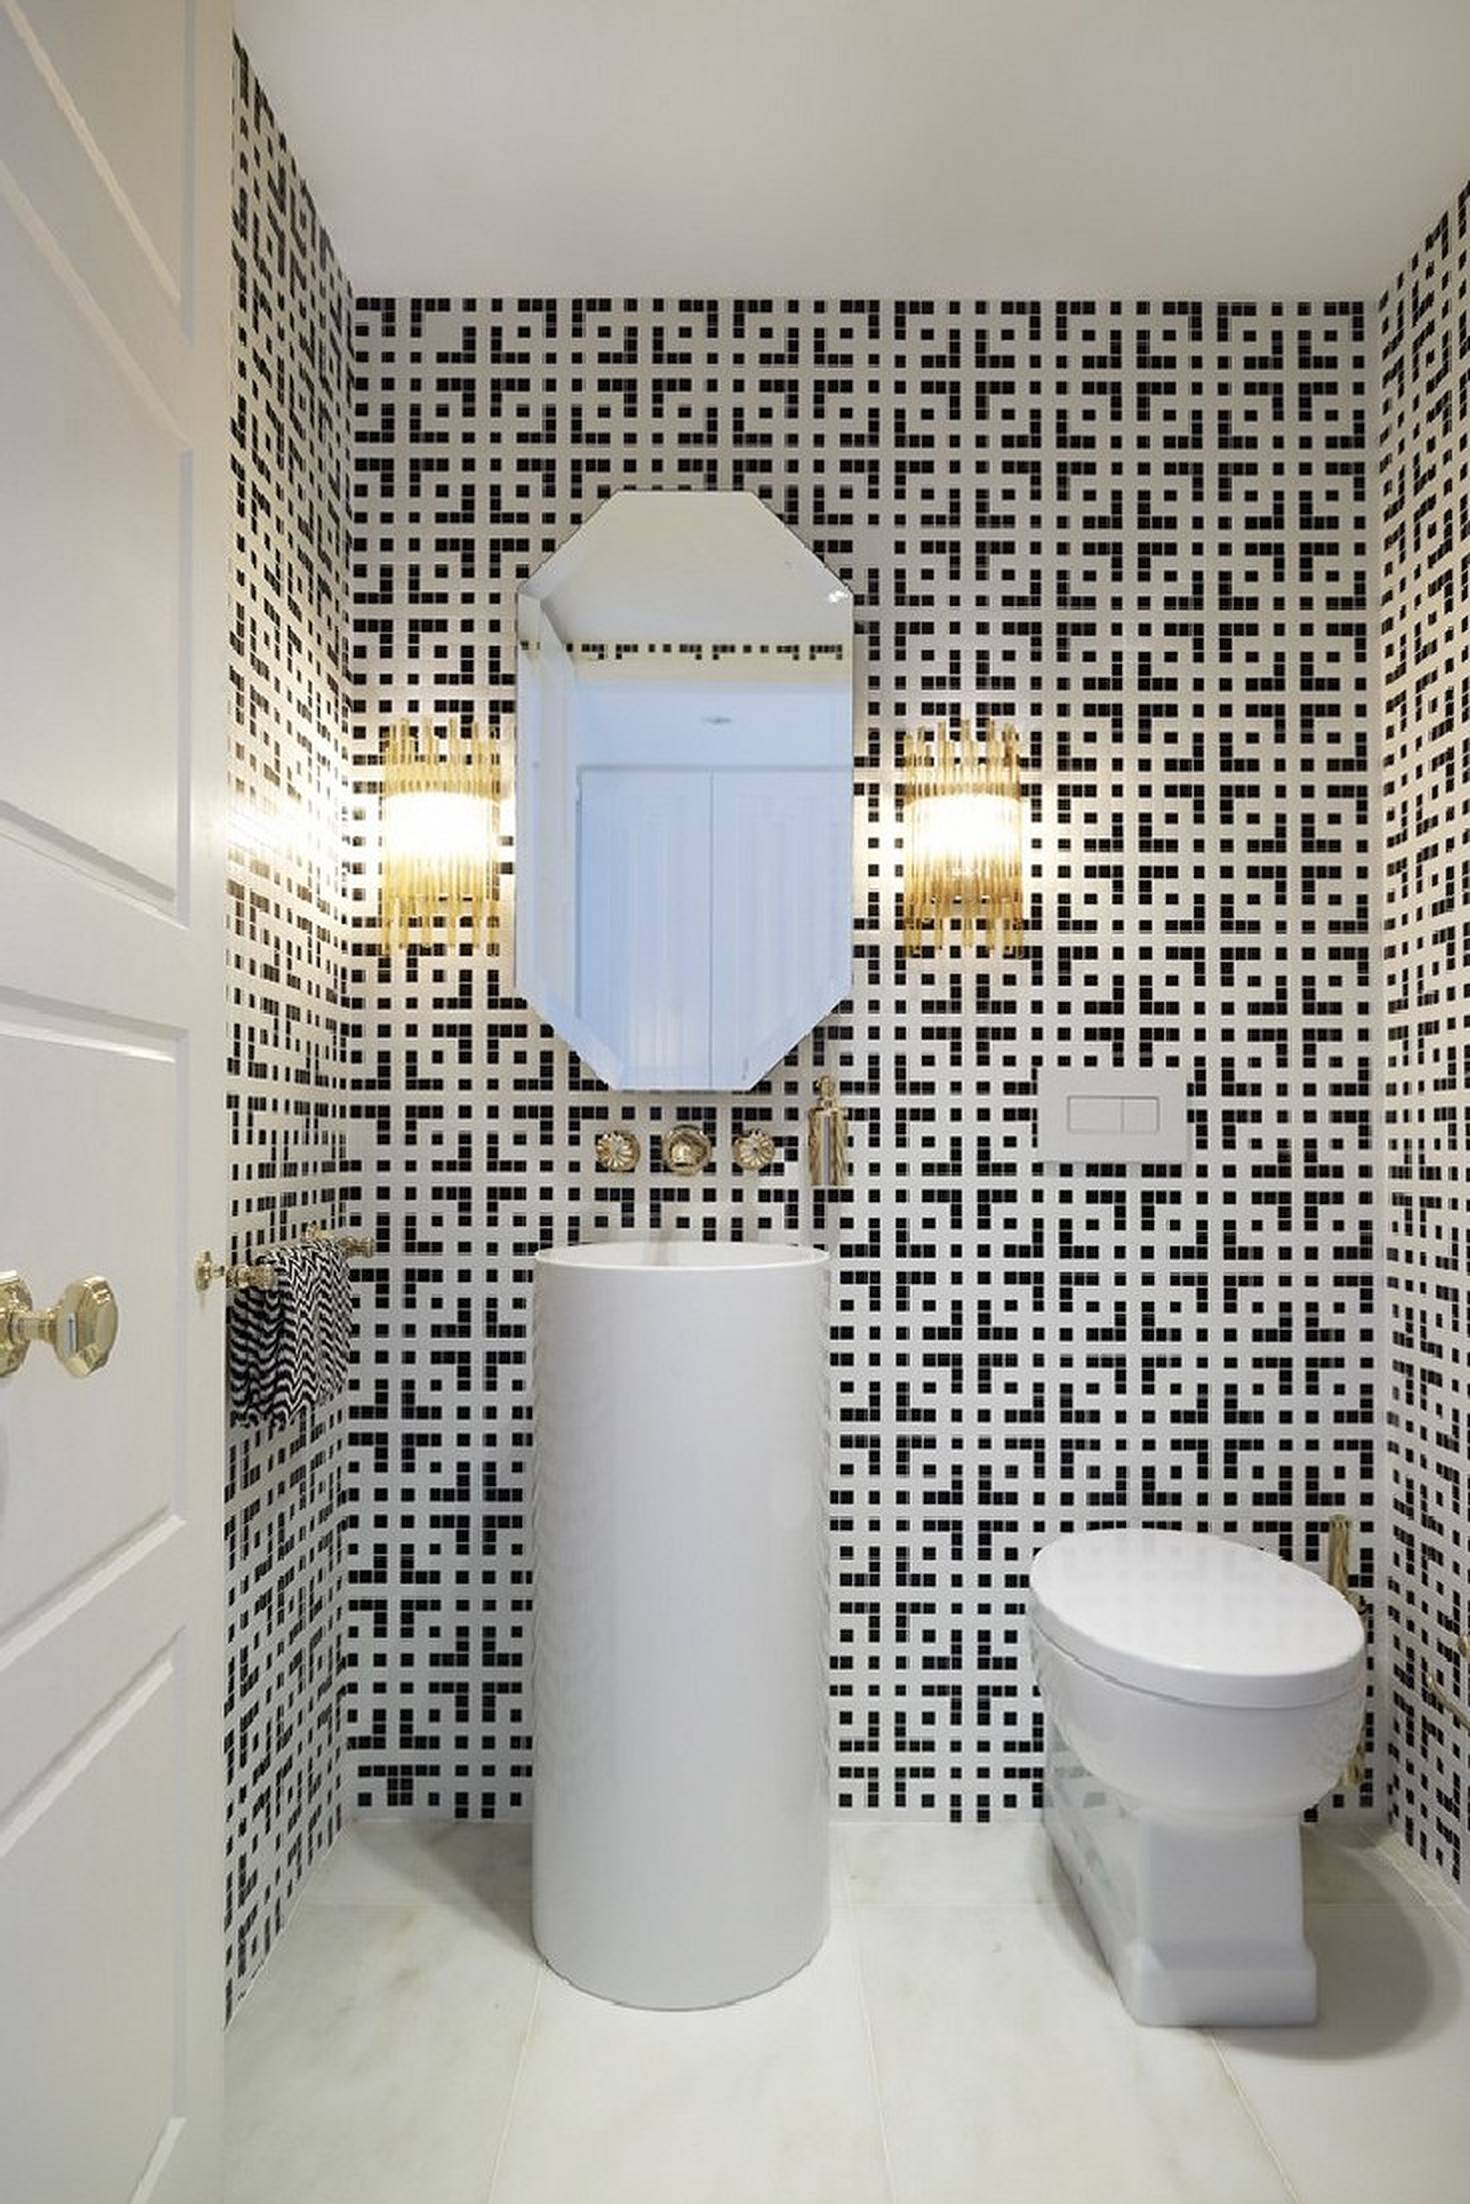 Bathroom with black and white wall tiles